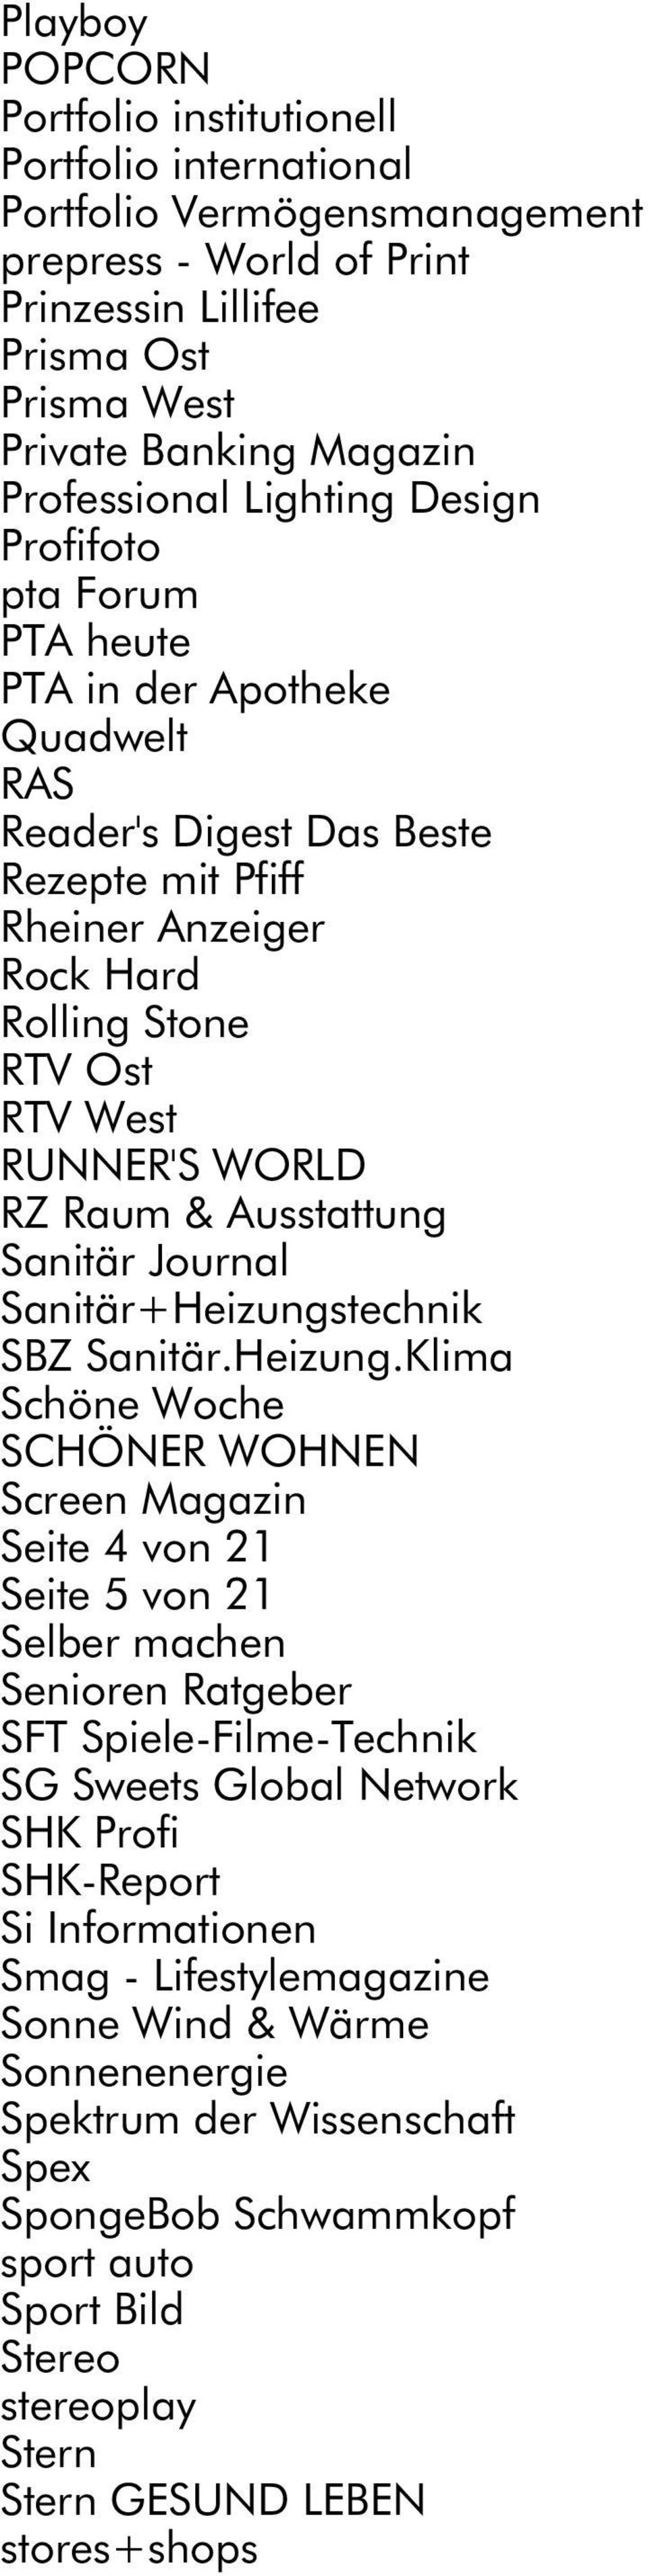 RUNNER'S WORLD RZ Raum & Ausstattung Sanitär Journal Sanitär+Heizungs